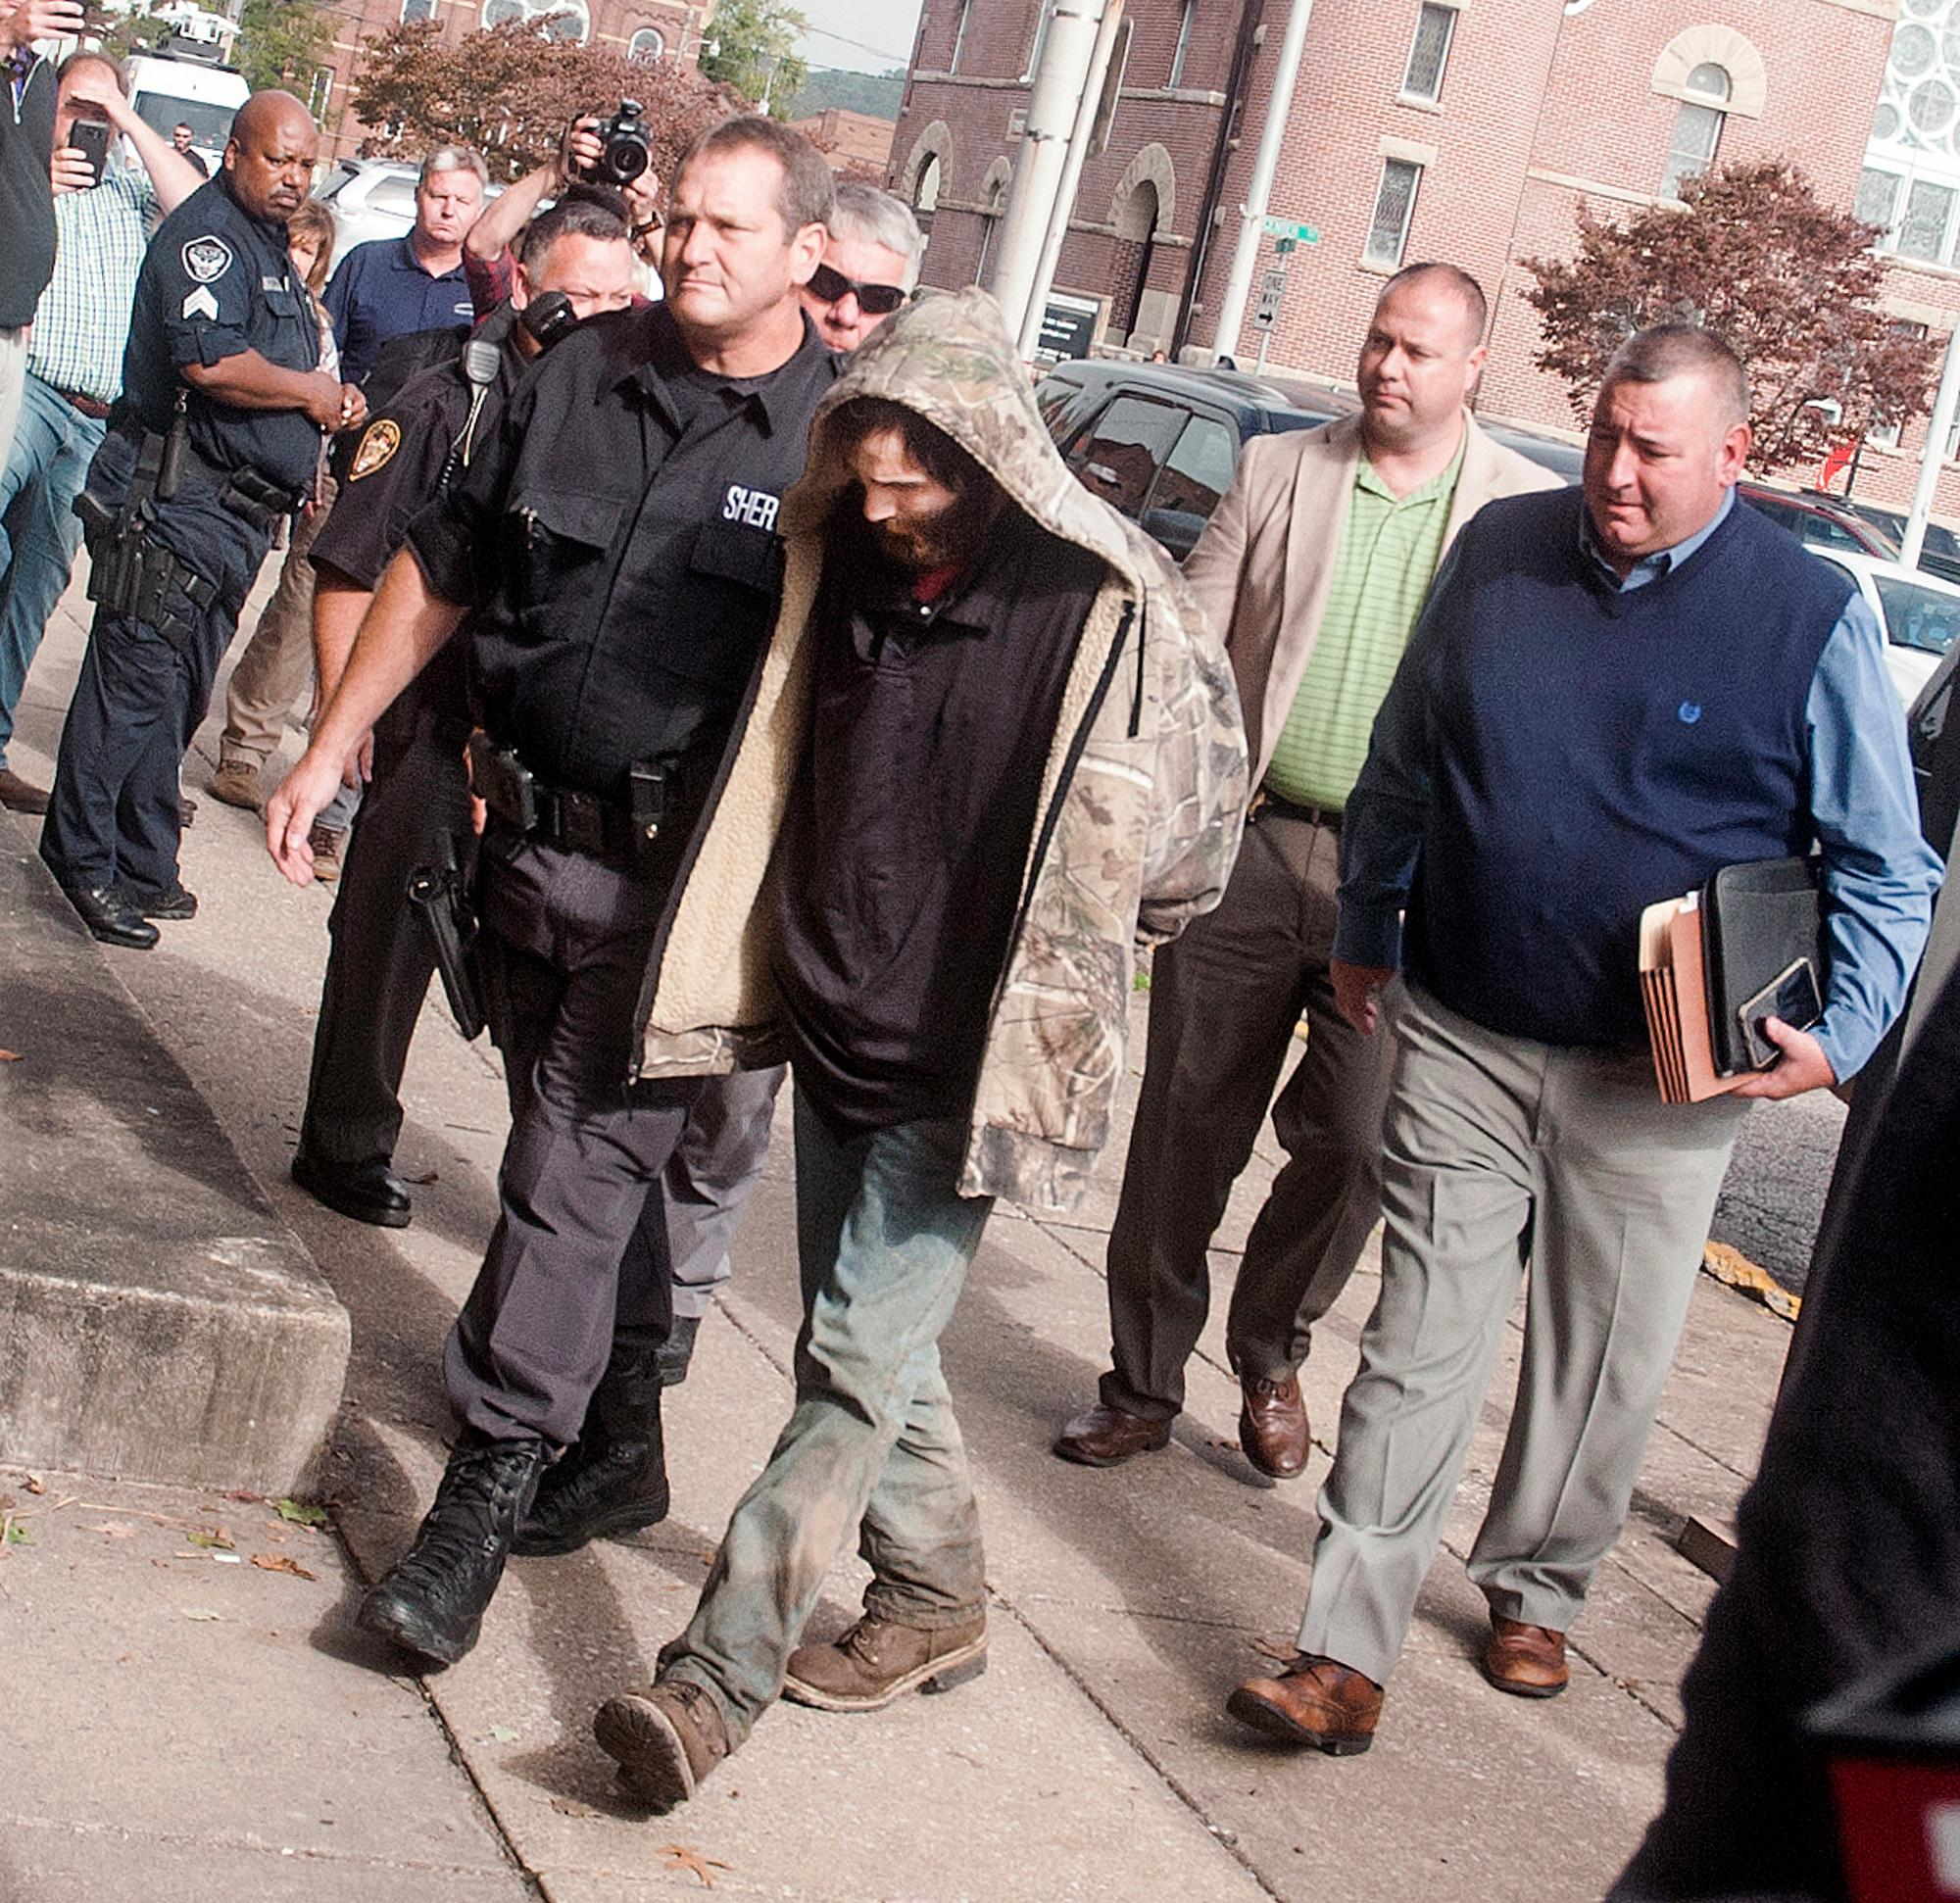 Suspect Arron Lawson, center, is escorted into the Lawrence County Courthouse, Friday Oct. 13, 2017 by Sheriff Jeff Lawless, left, and detectives Jason Newman and Aaron Bollinger, pictured on far right, of the Lawrence County Sheriff's Office in Ironton, Ohio. Lawson is being held on charges of murder and aggravated murder. (Jessica St. James/Ironton Tribune via AP)